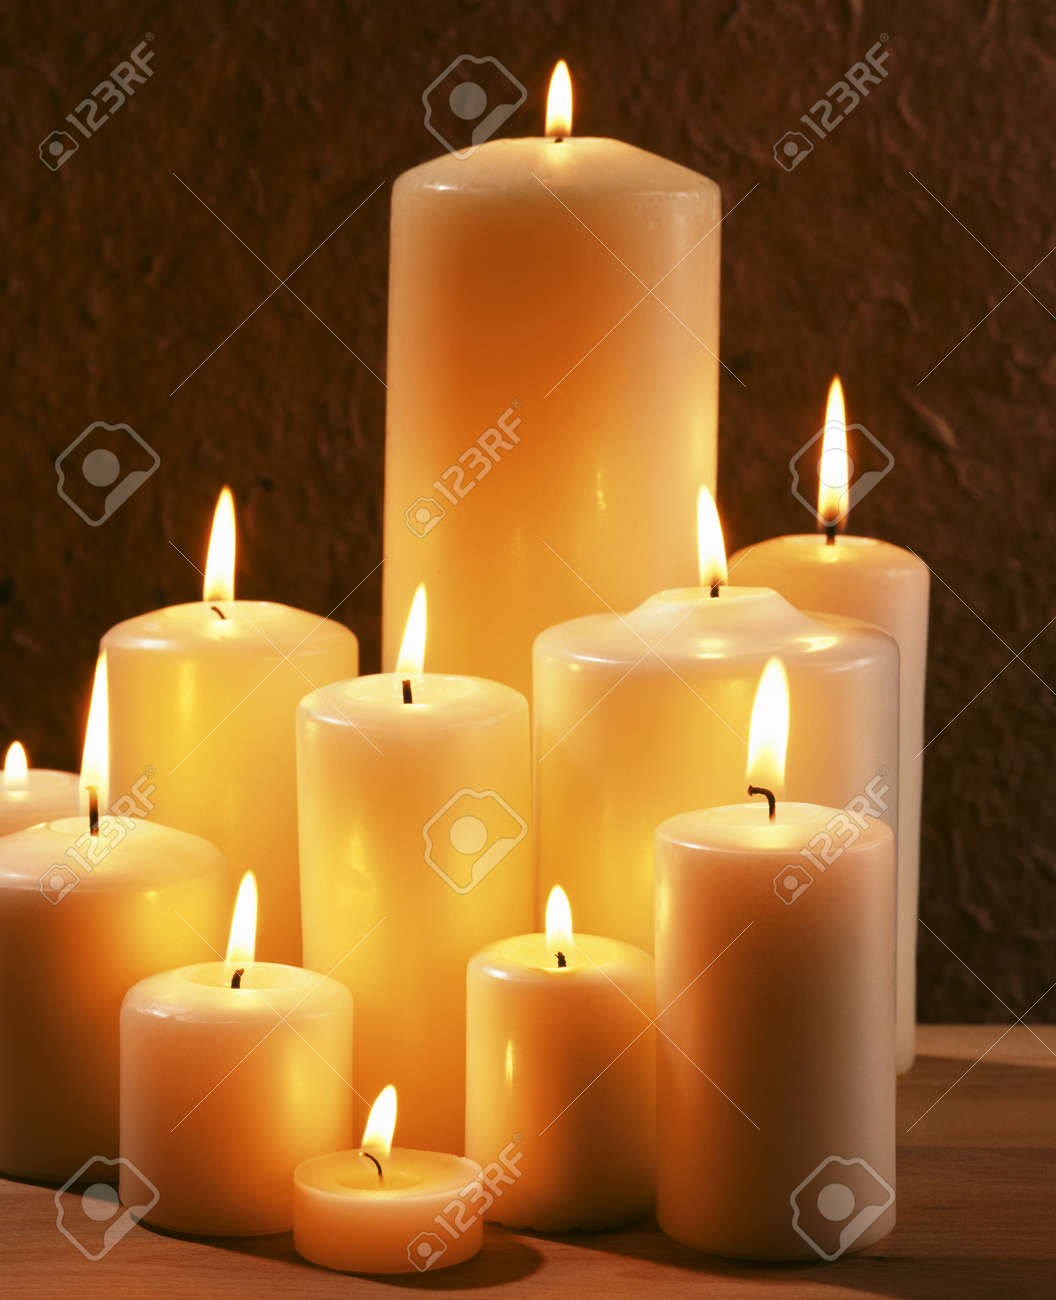 Group of burning candles at a dark background Stock Photo - 20752460